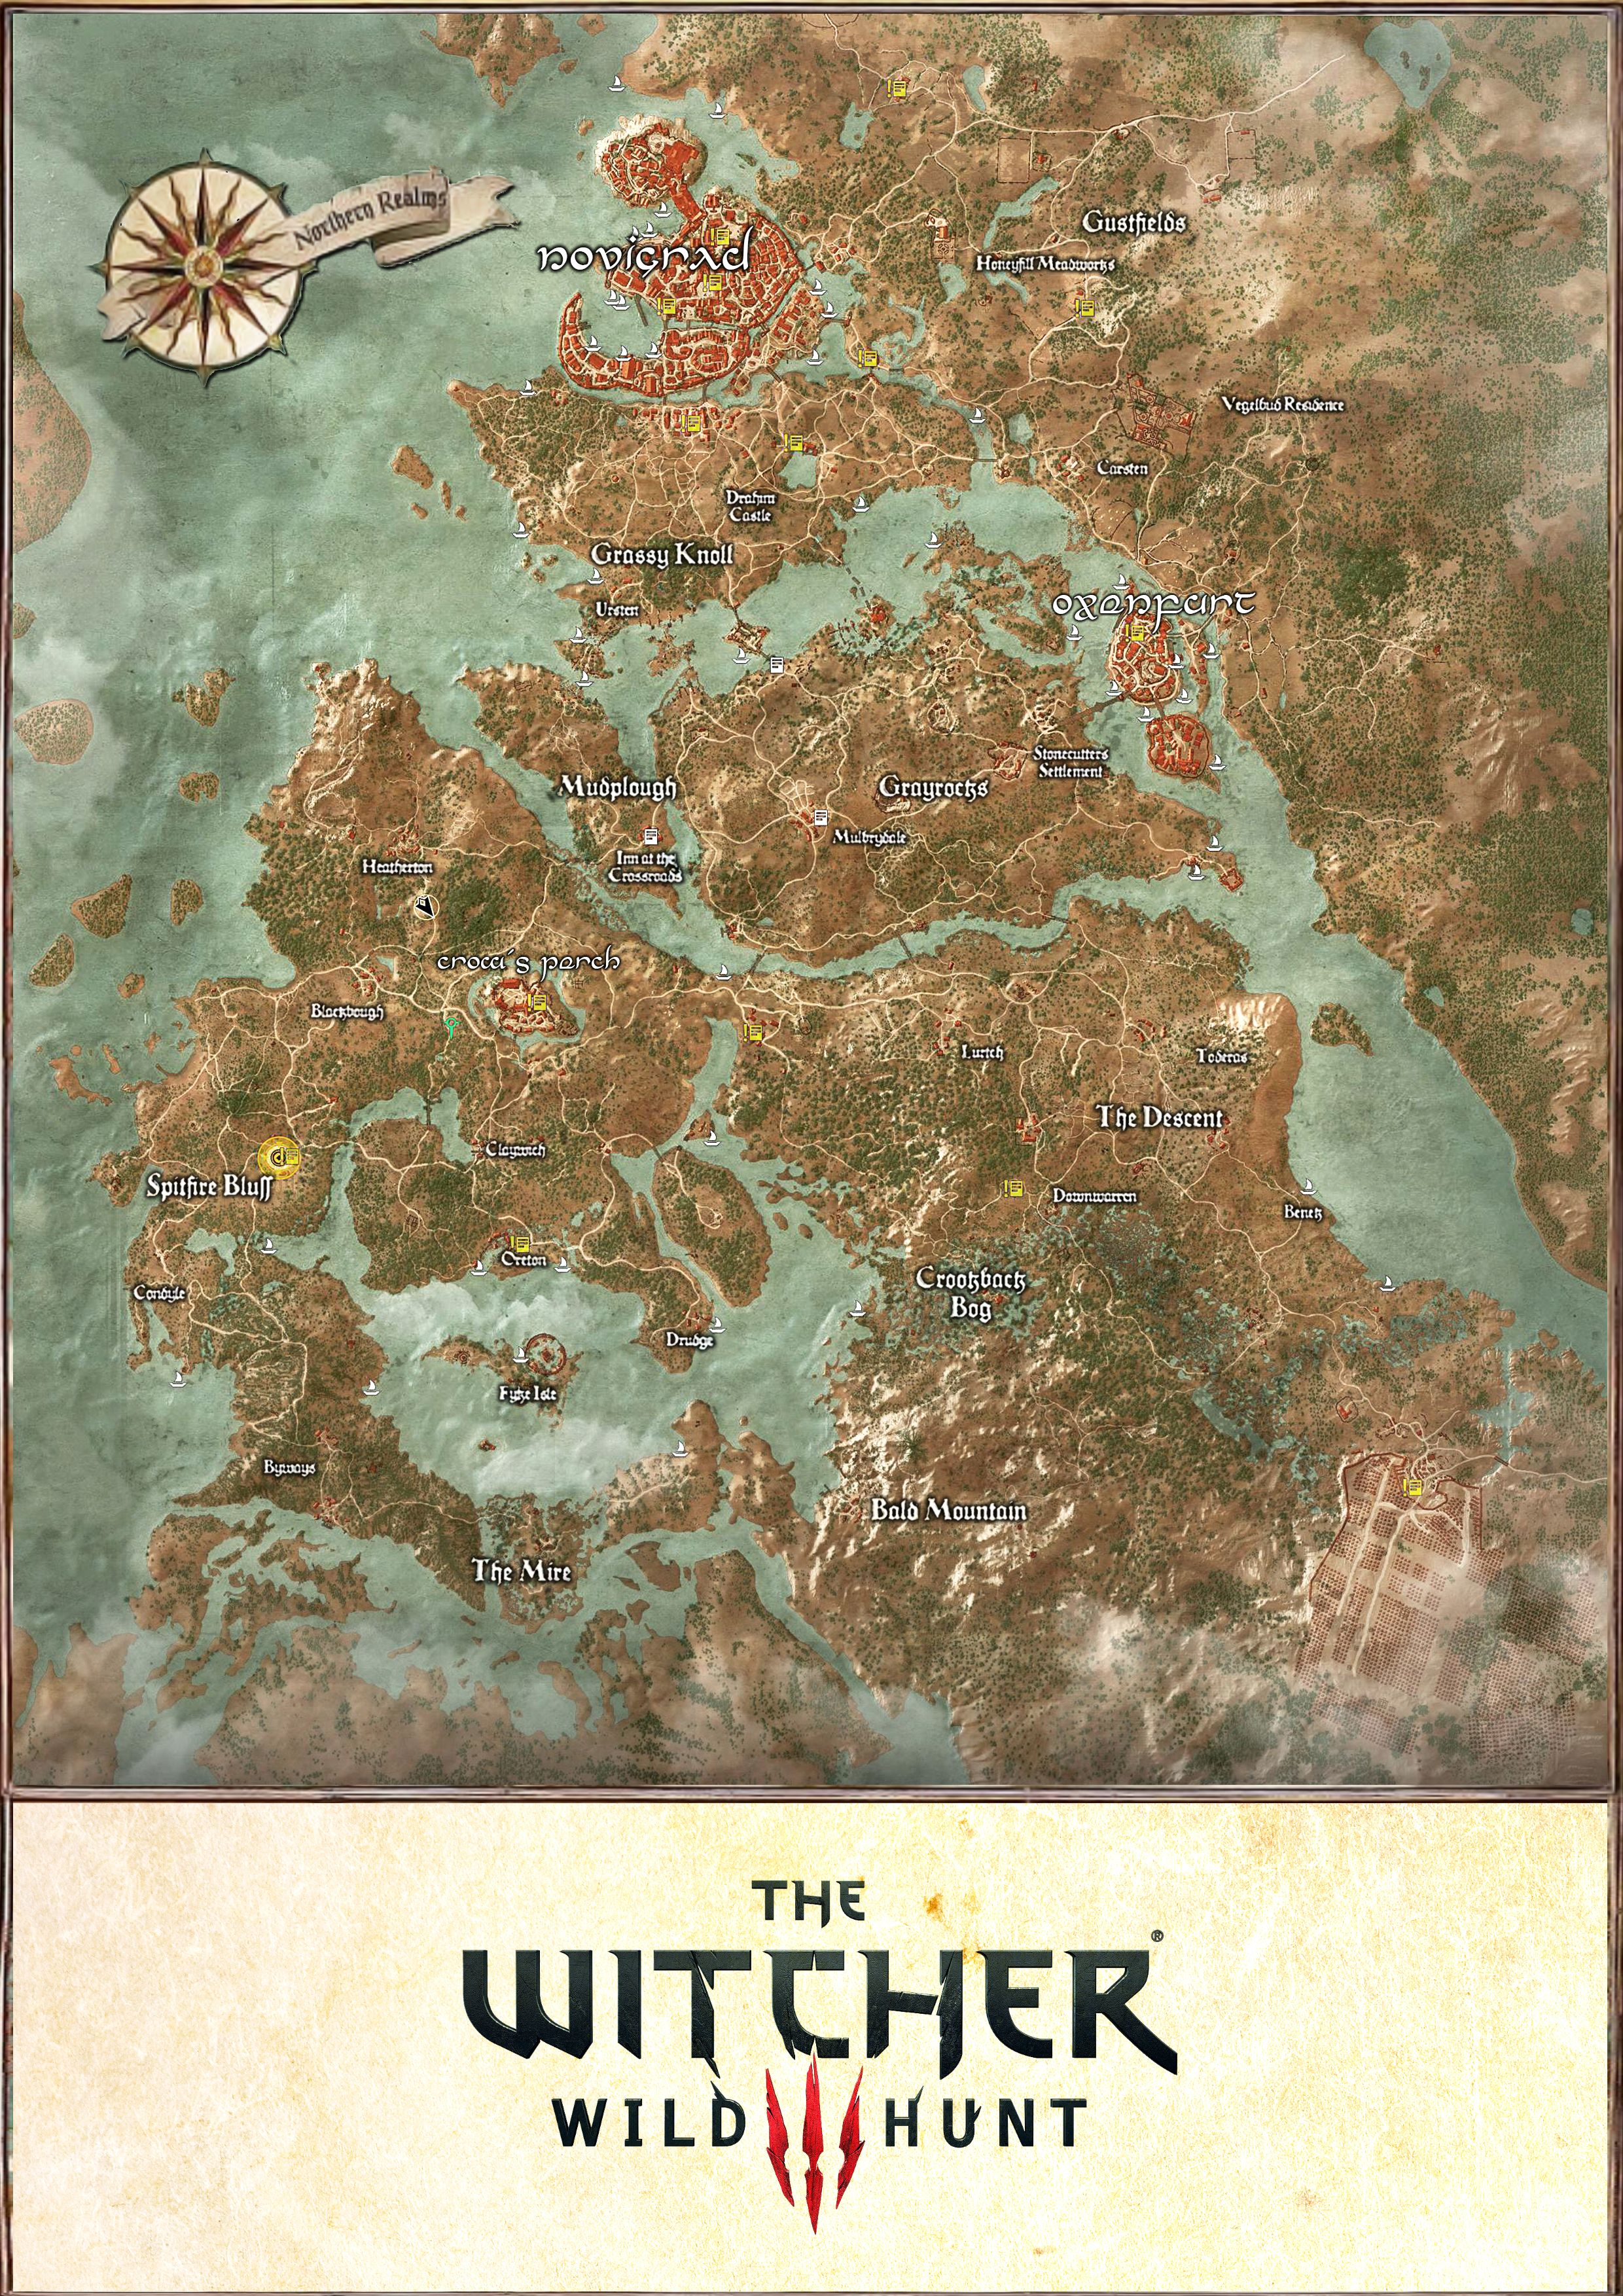 Witcher 3 The Wild Hunt Map of Velen I couldn 39 t find a High quality ma